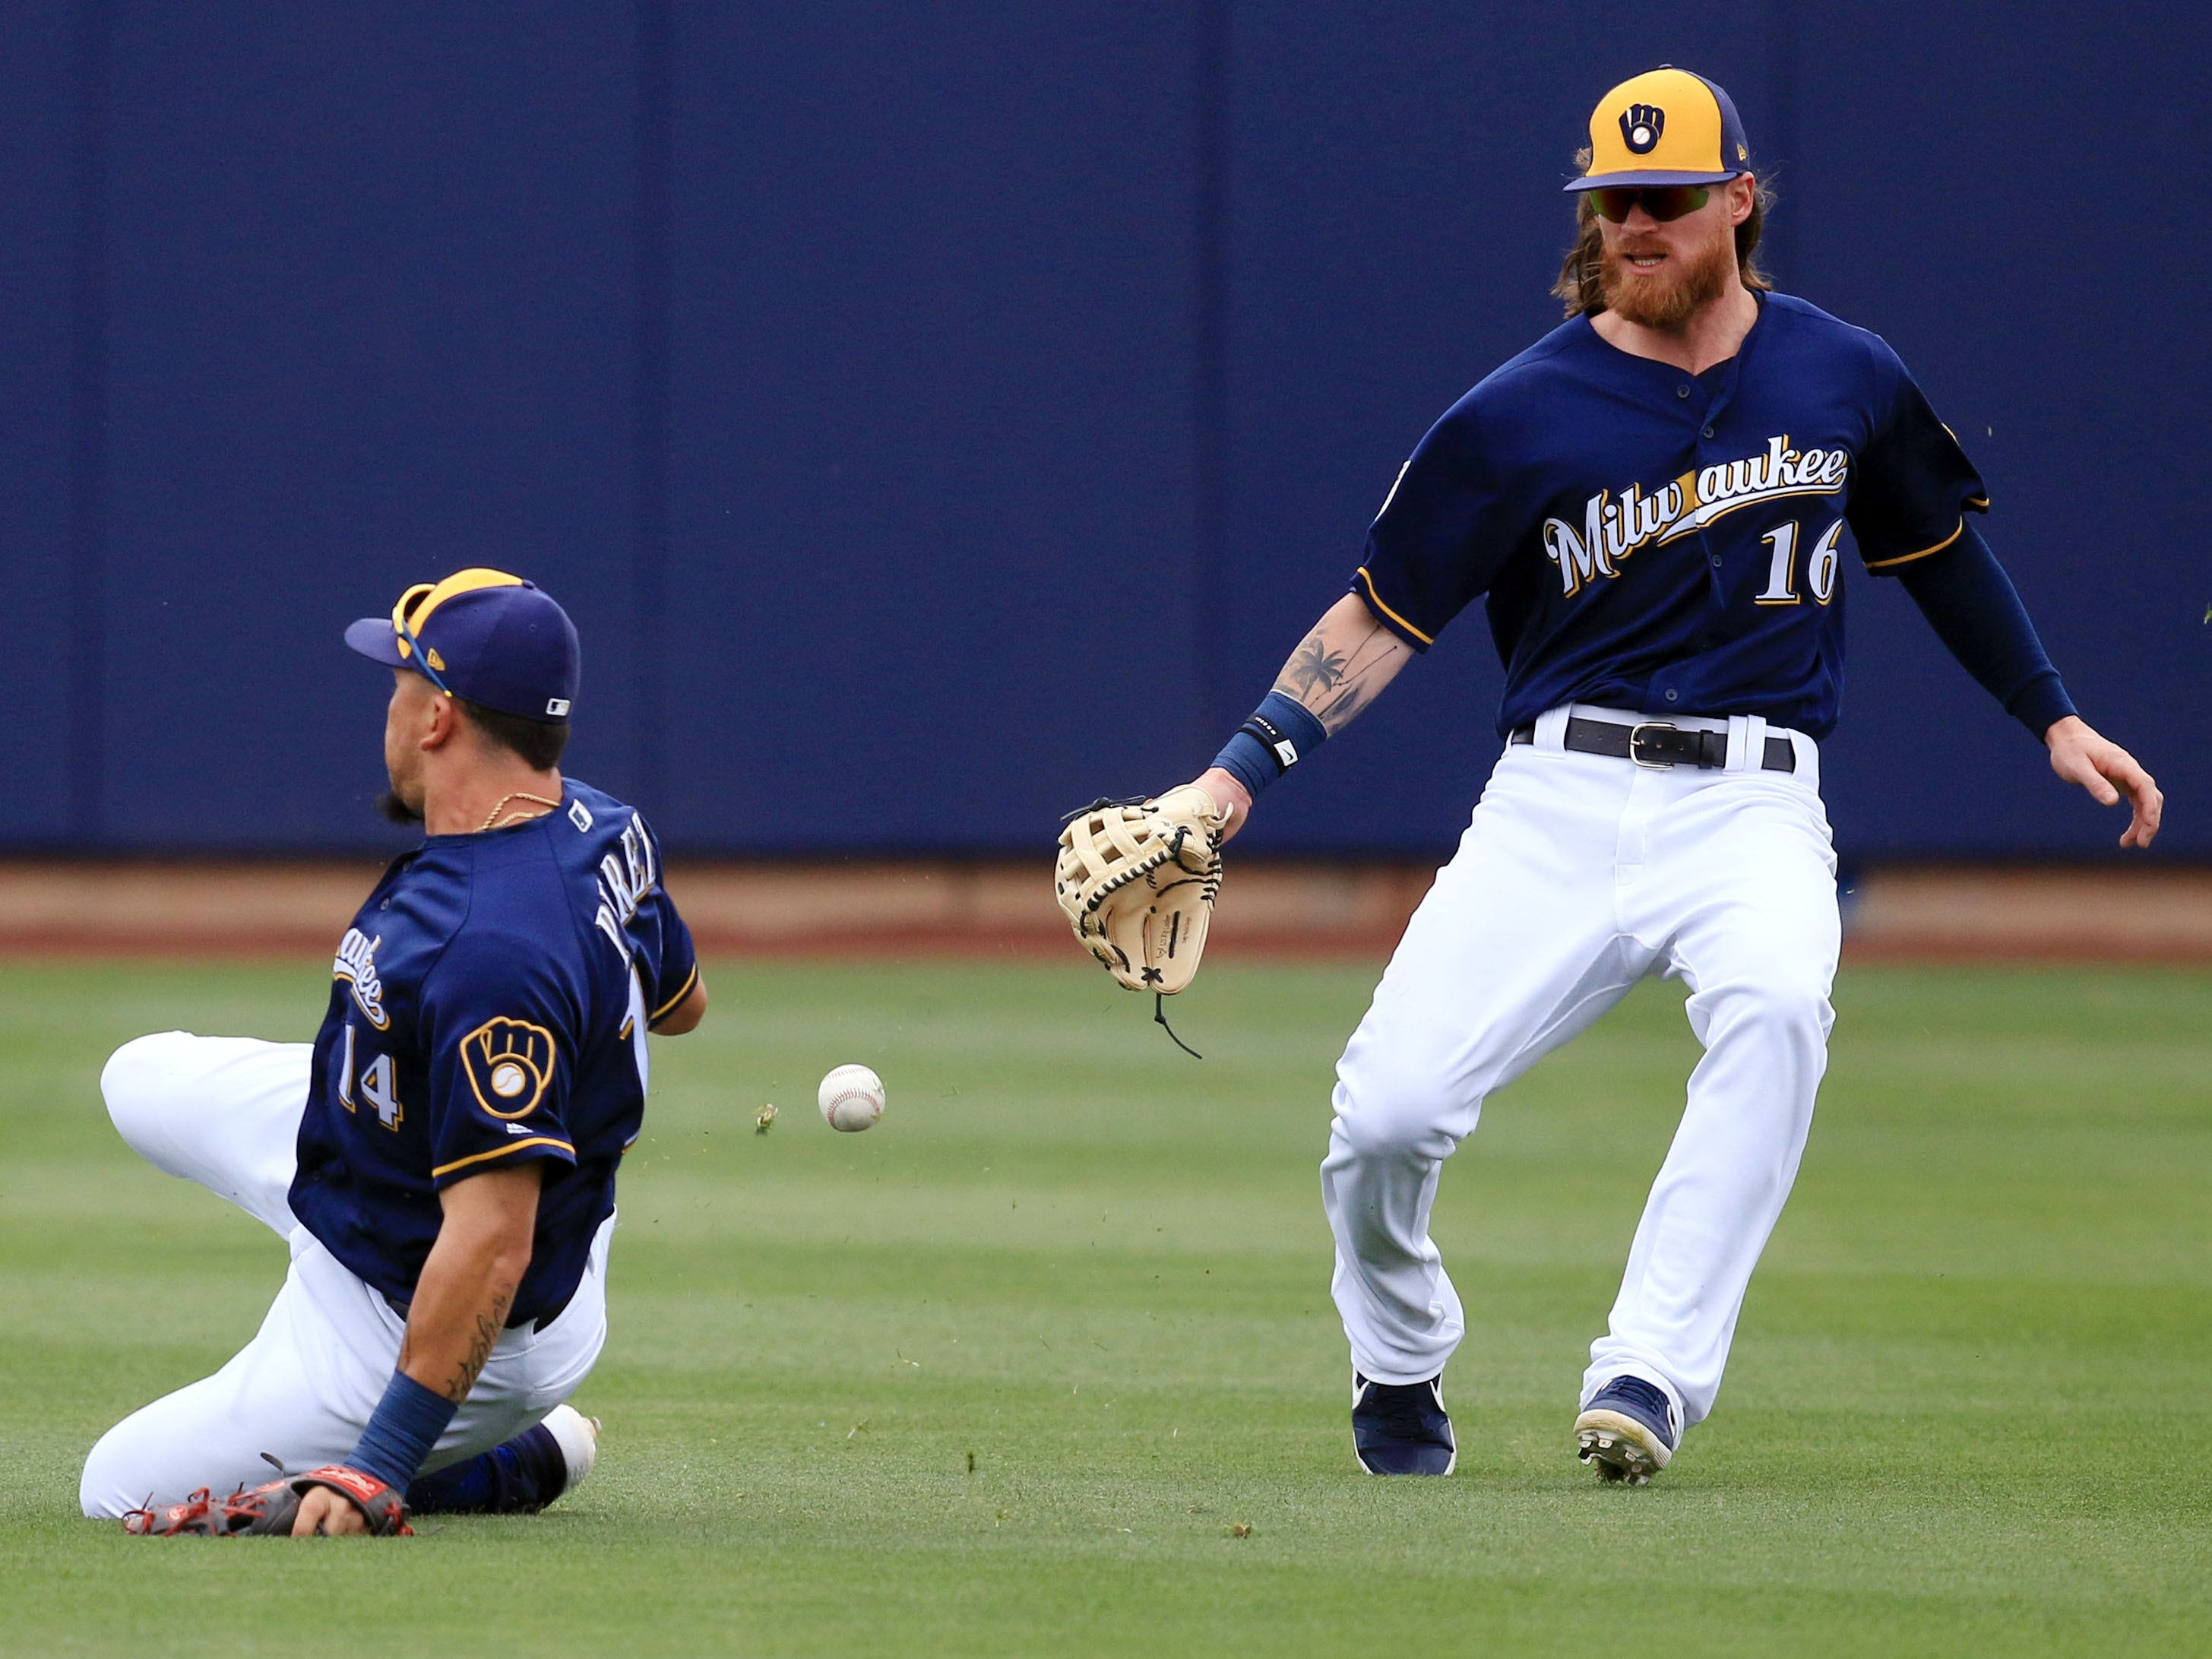 A pop fly falls between shortstop Hernan Perez and centerfielder Ben Gamel during the the Brewers' game against the Dodgers on Thursday.